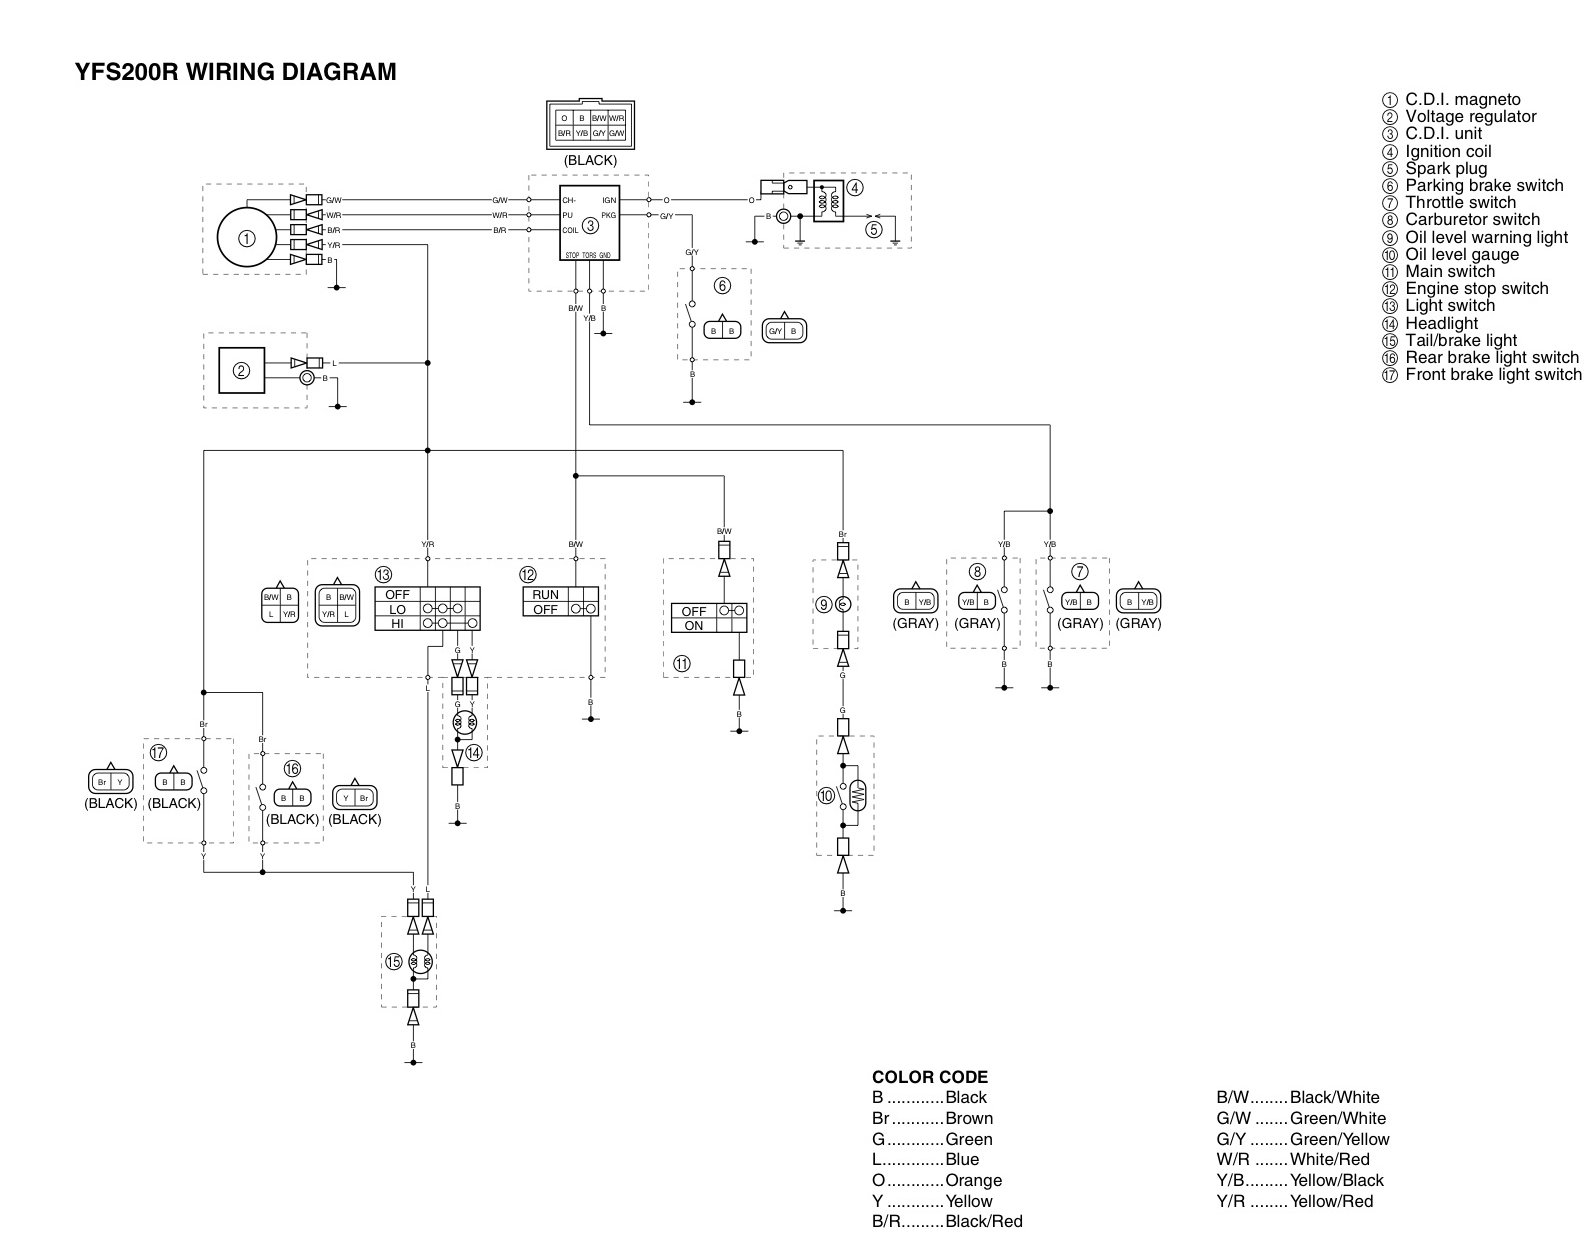 stock wiring diagrams blasterforum com 1993 yamaha blaster headlight wiring diagram at eliteediting.co